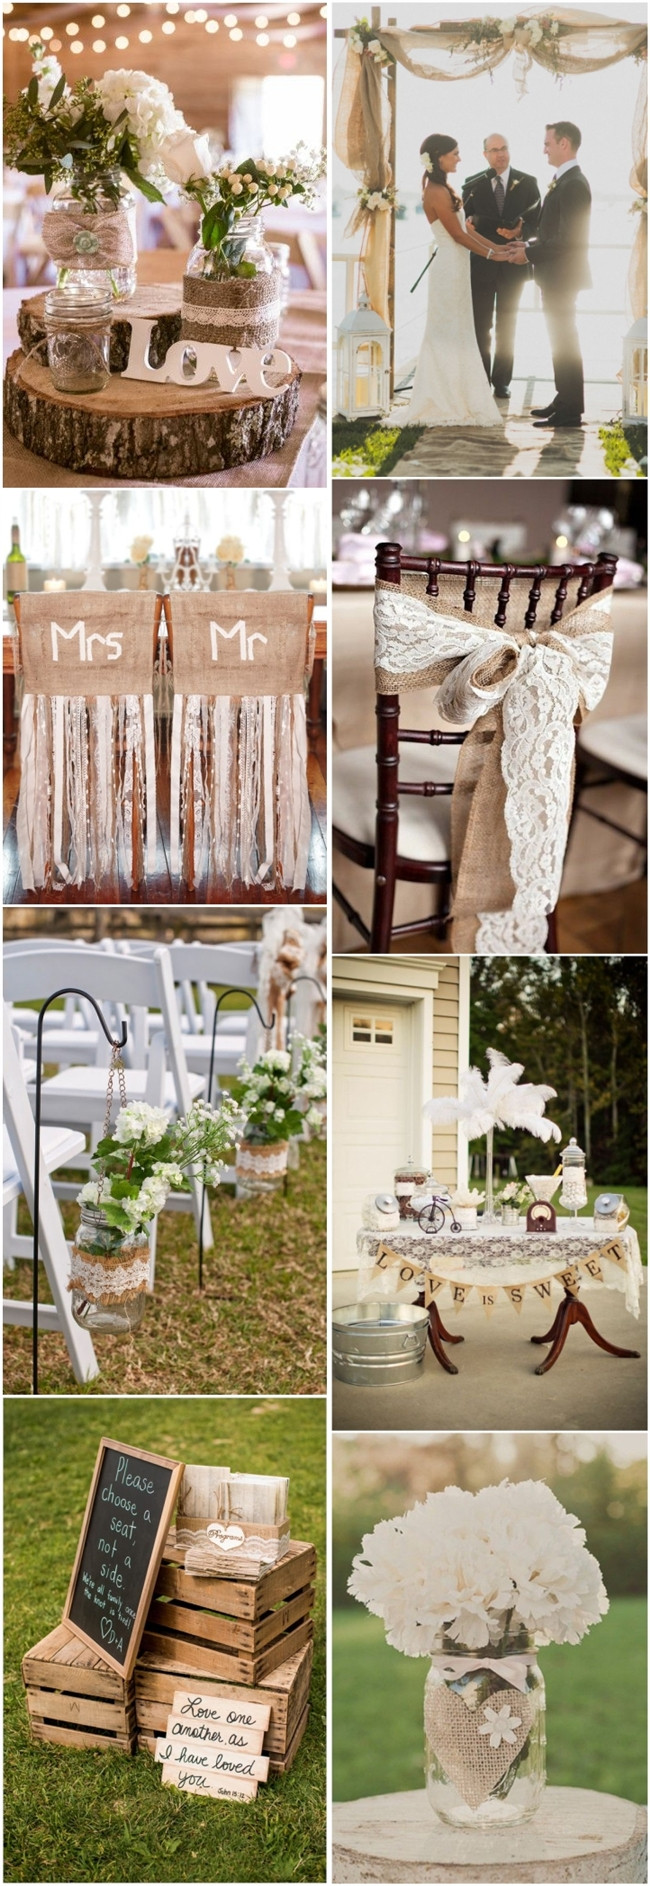 Country Themed Wedding Favors  45 Chic Rustic Burlap & Lace Wedding Ideas and Inspiration